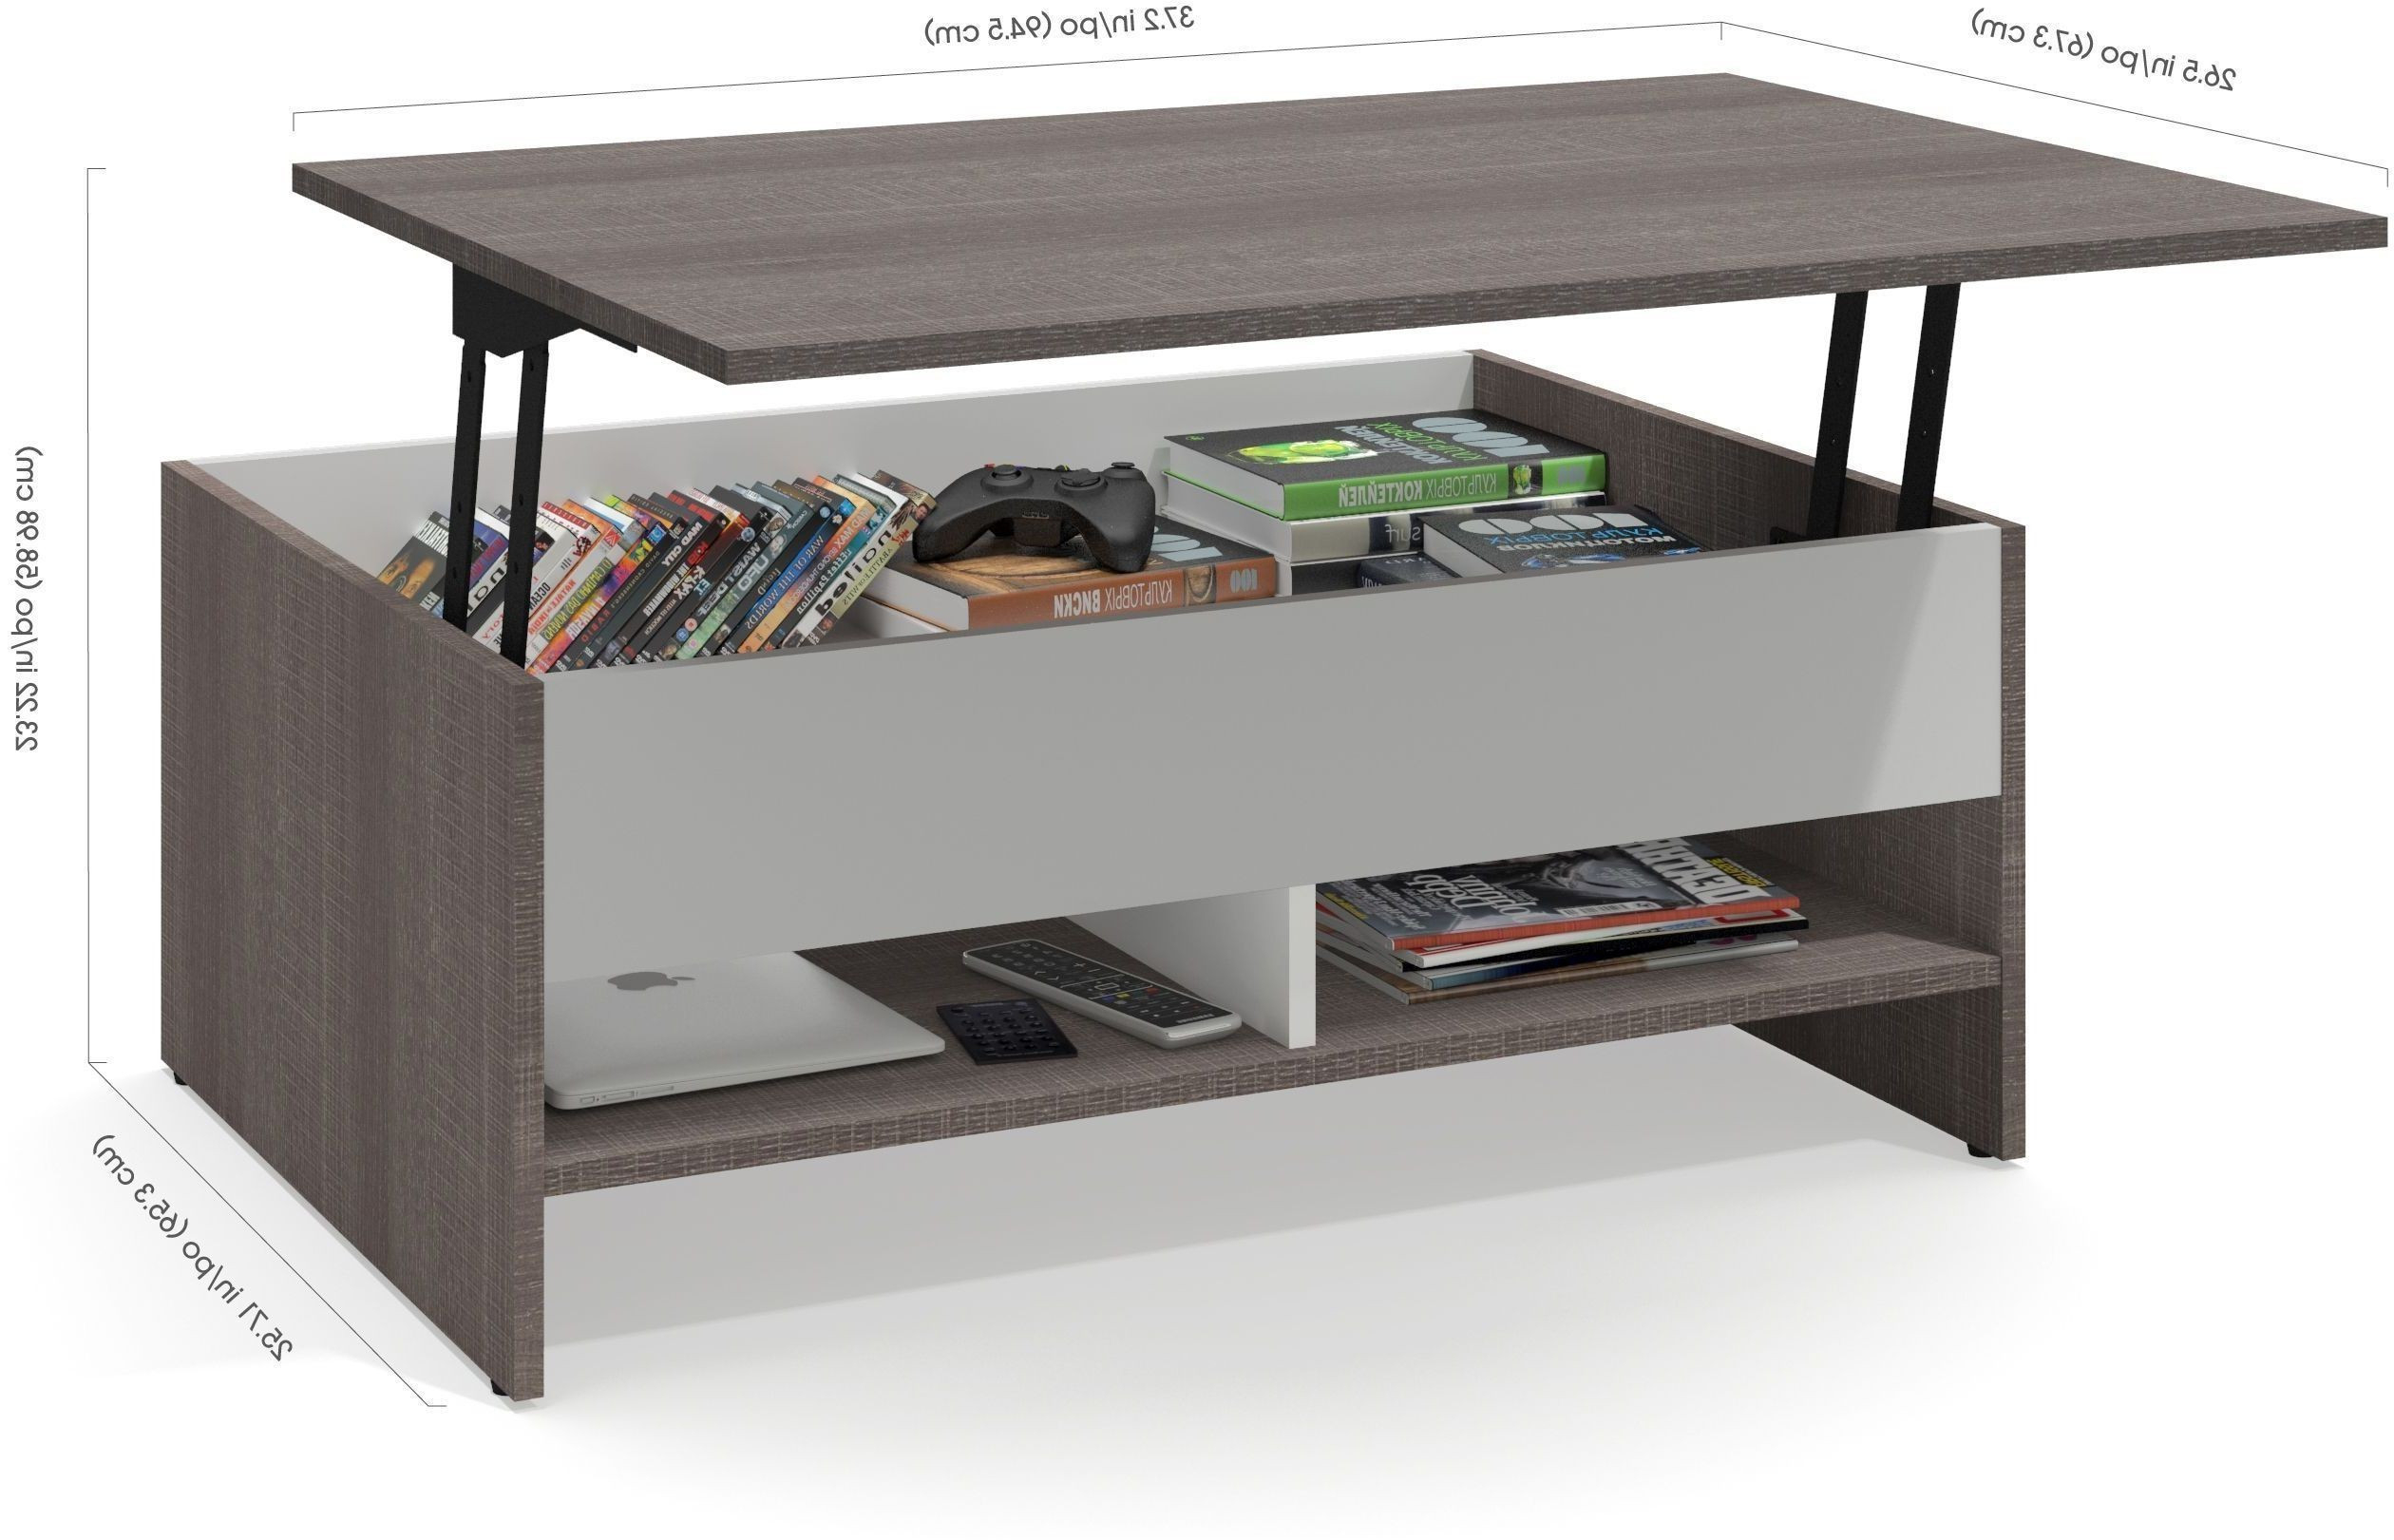 Living Room Tv Cabinet Designs 8 Tv Stand With Matching Bookcases Inside Most Up To Date Tv Stands With Matching Bookcases (View 18 of 20)